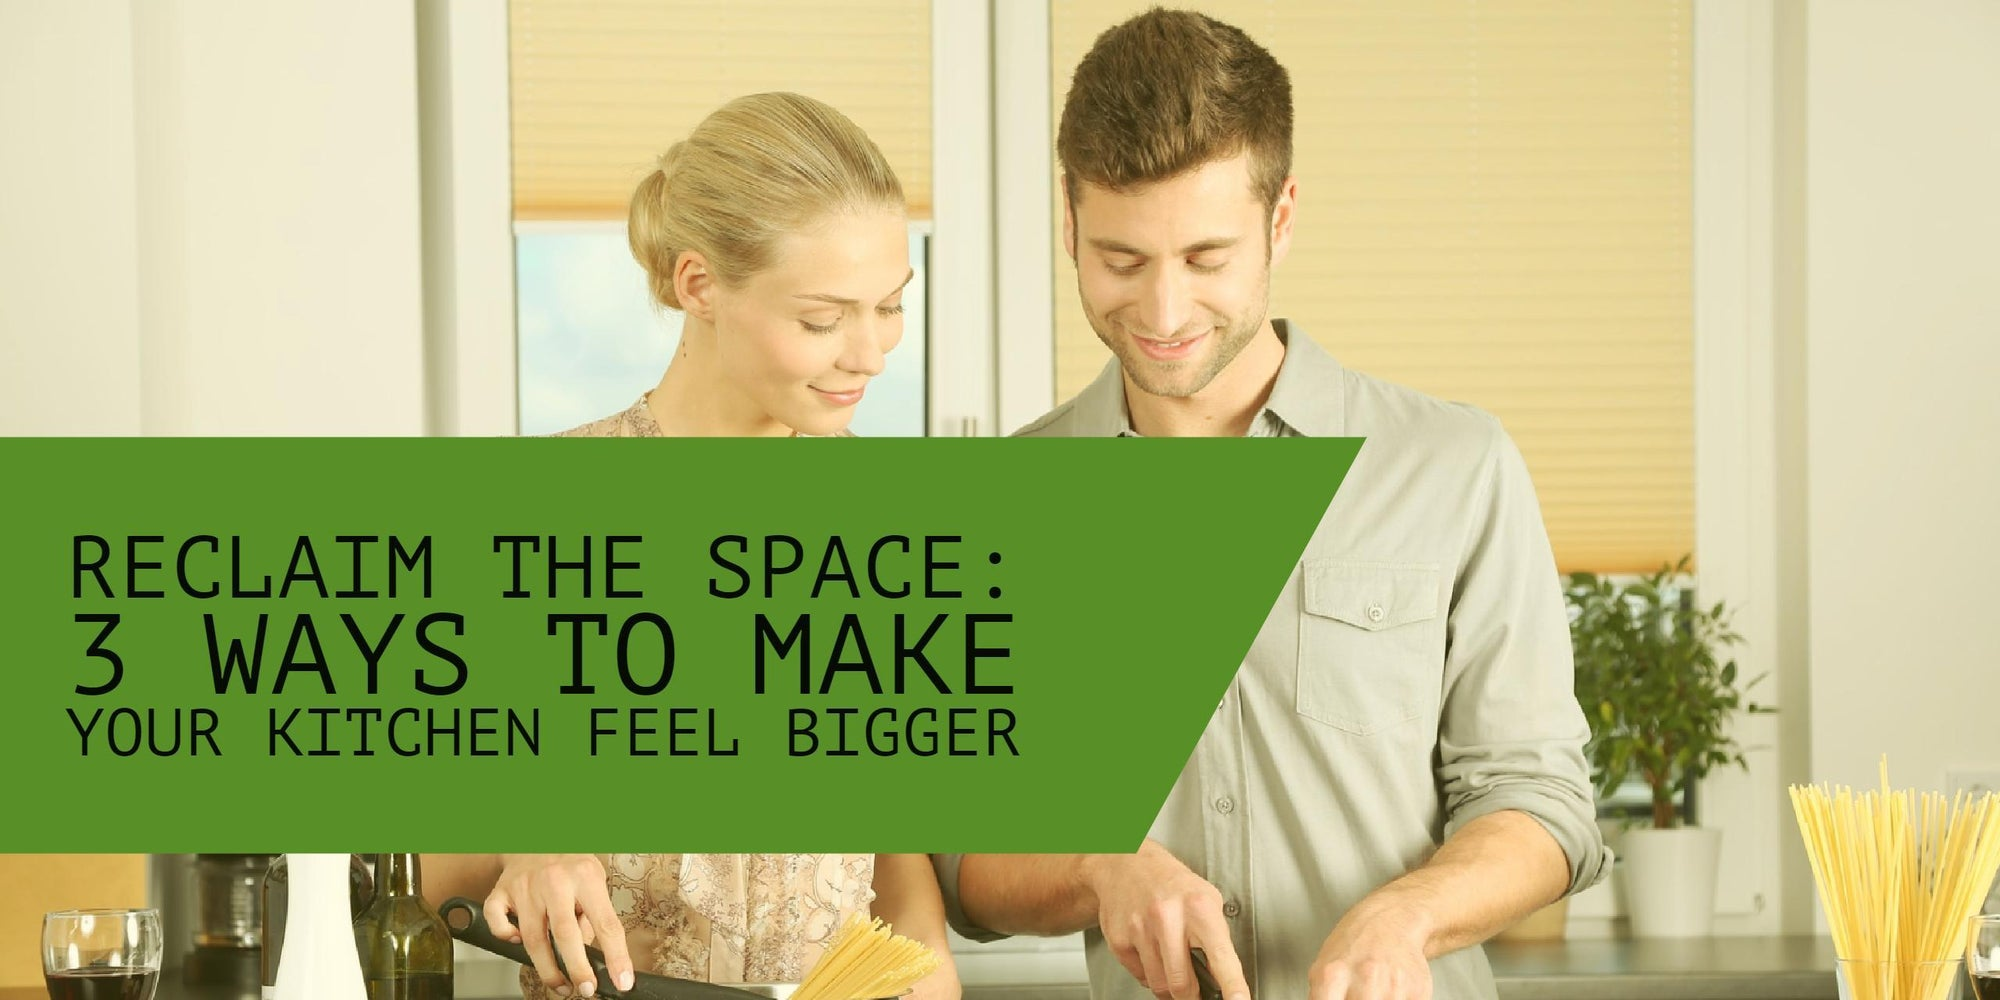 How-To Reclaim Space: 3 Ways to Make Your Kitchen Feel Bigger